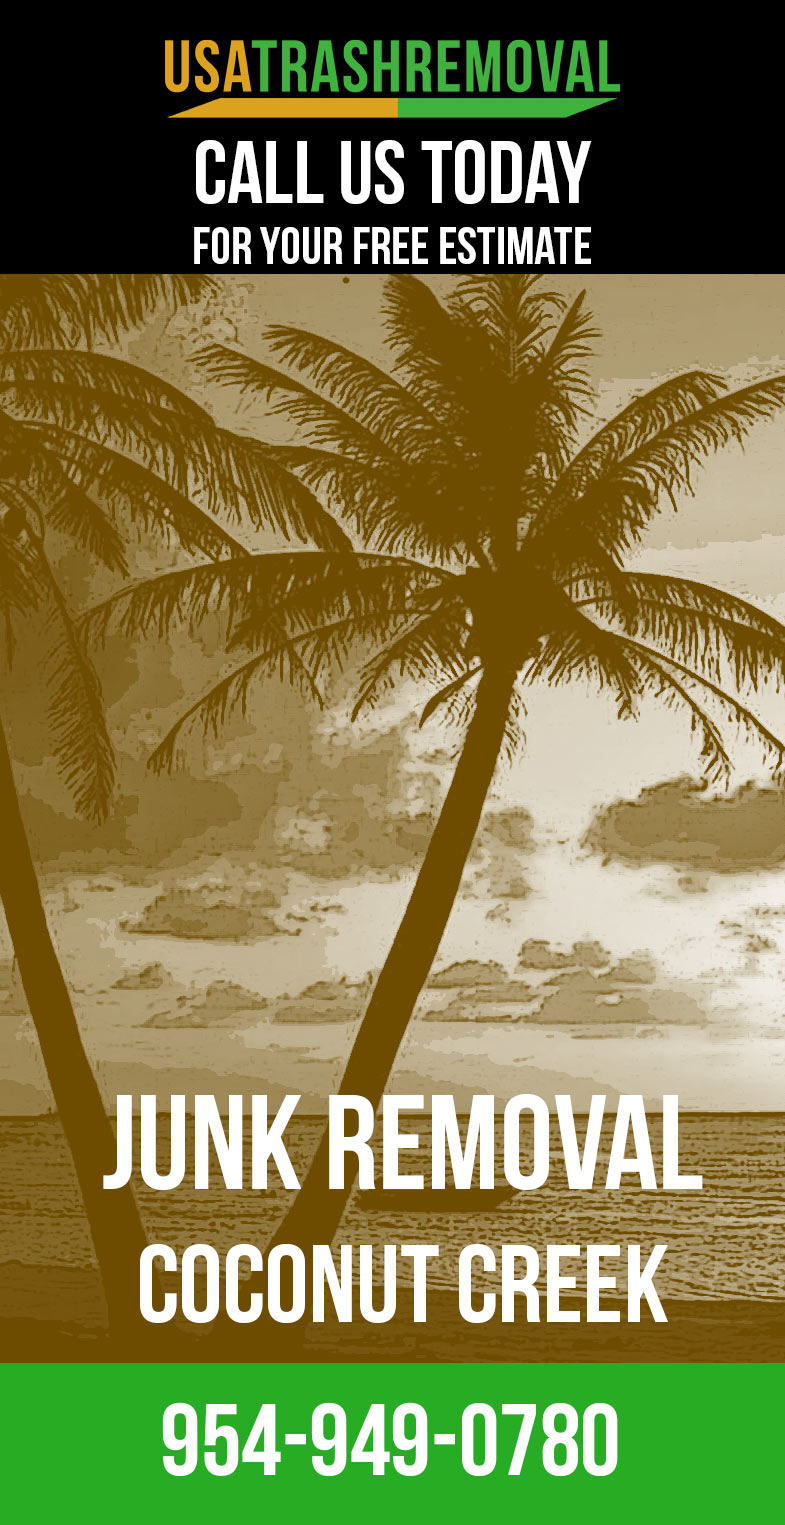 Junk Removal Coconut Creek